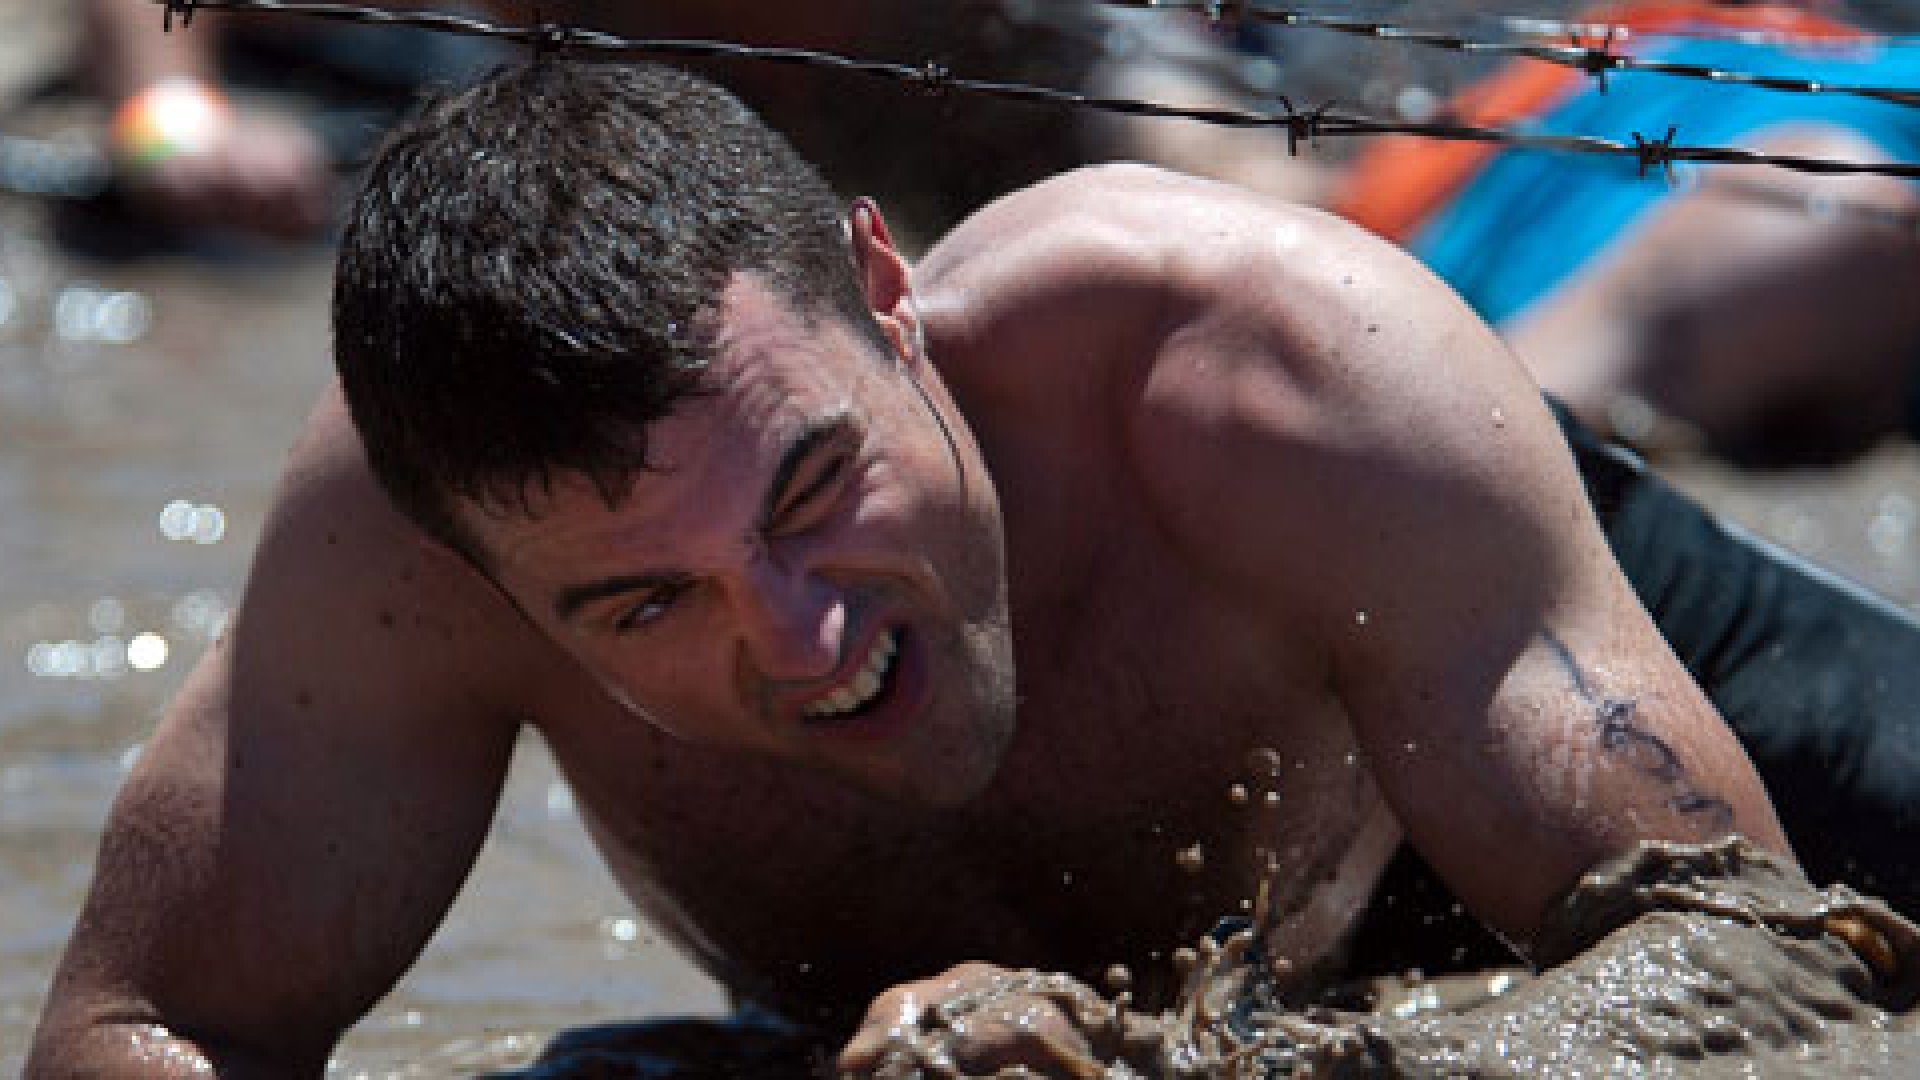 Mass Communication Specialist 3rd Class Sebastian McCormack, crawls through the mud on his way through the third obstacle of a Tough Mudder competition in Snow Valley, California.